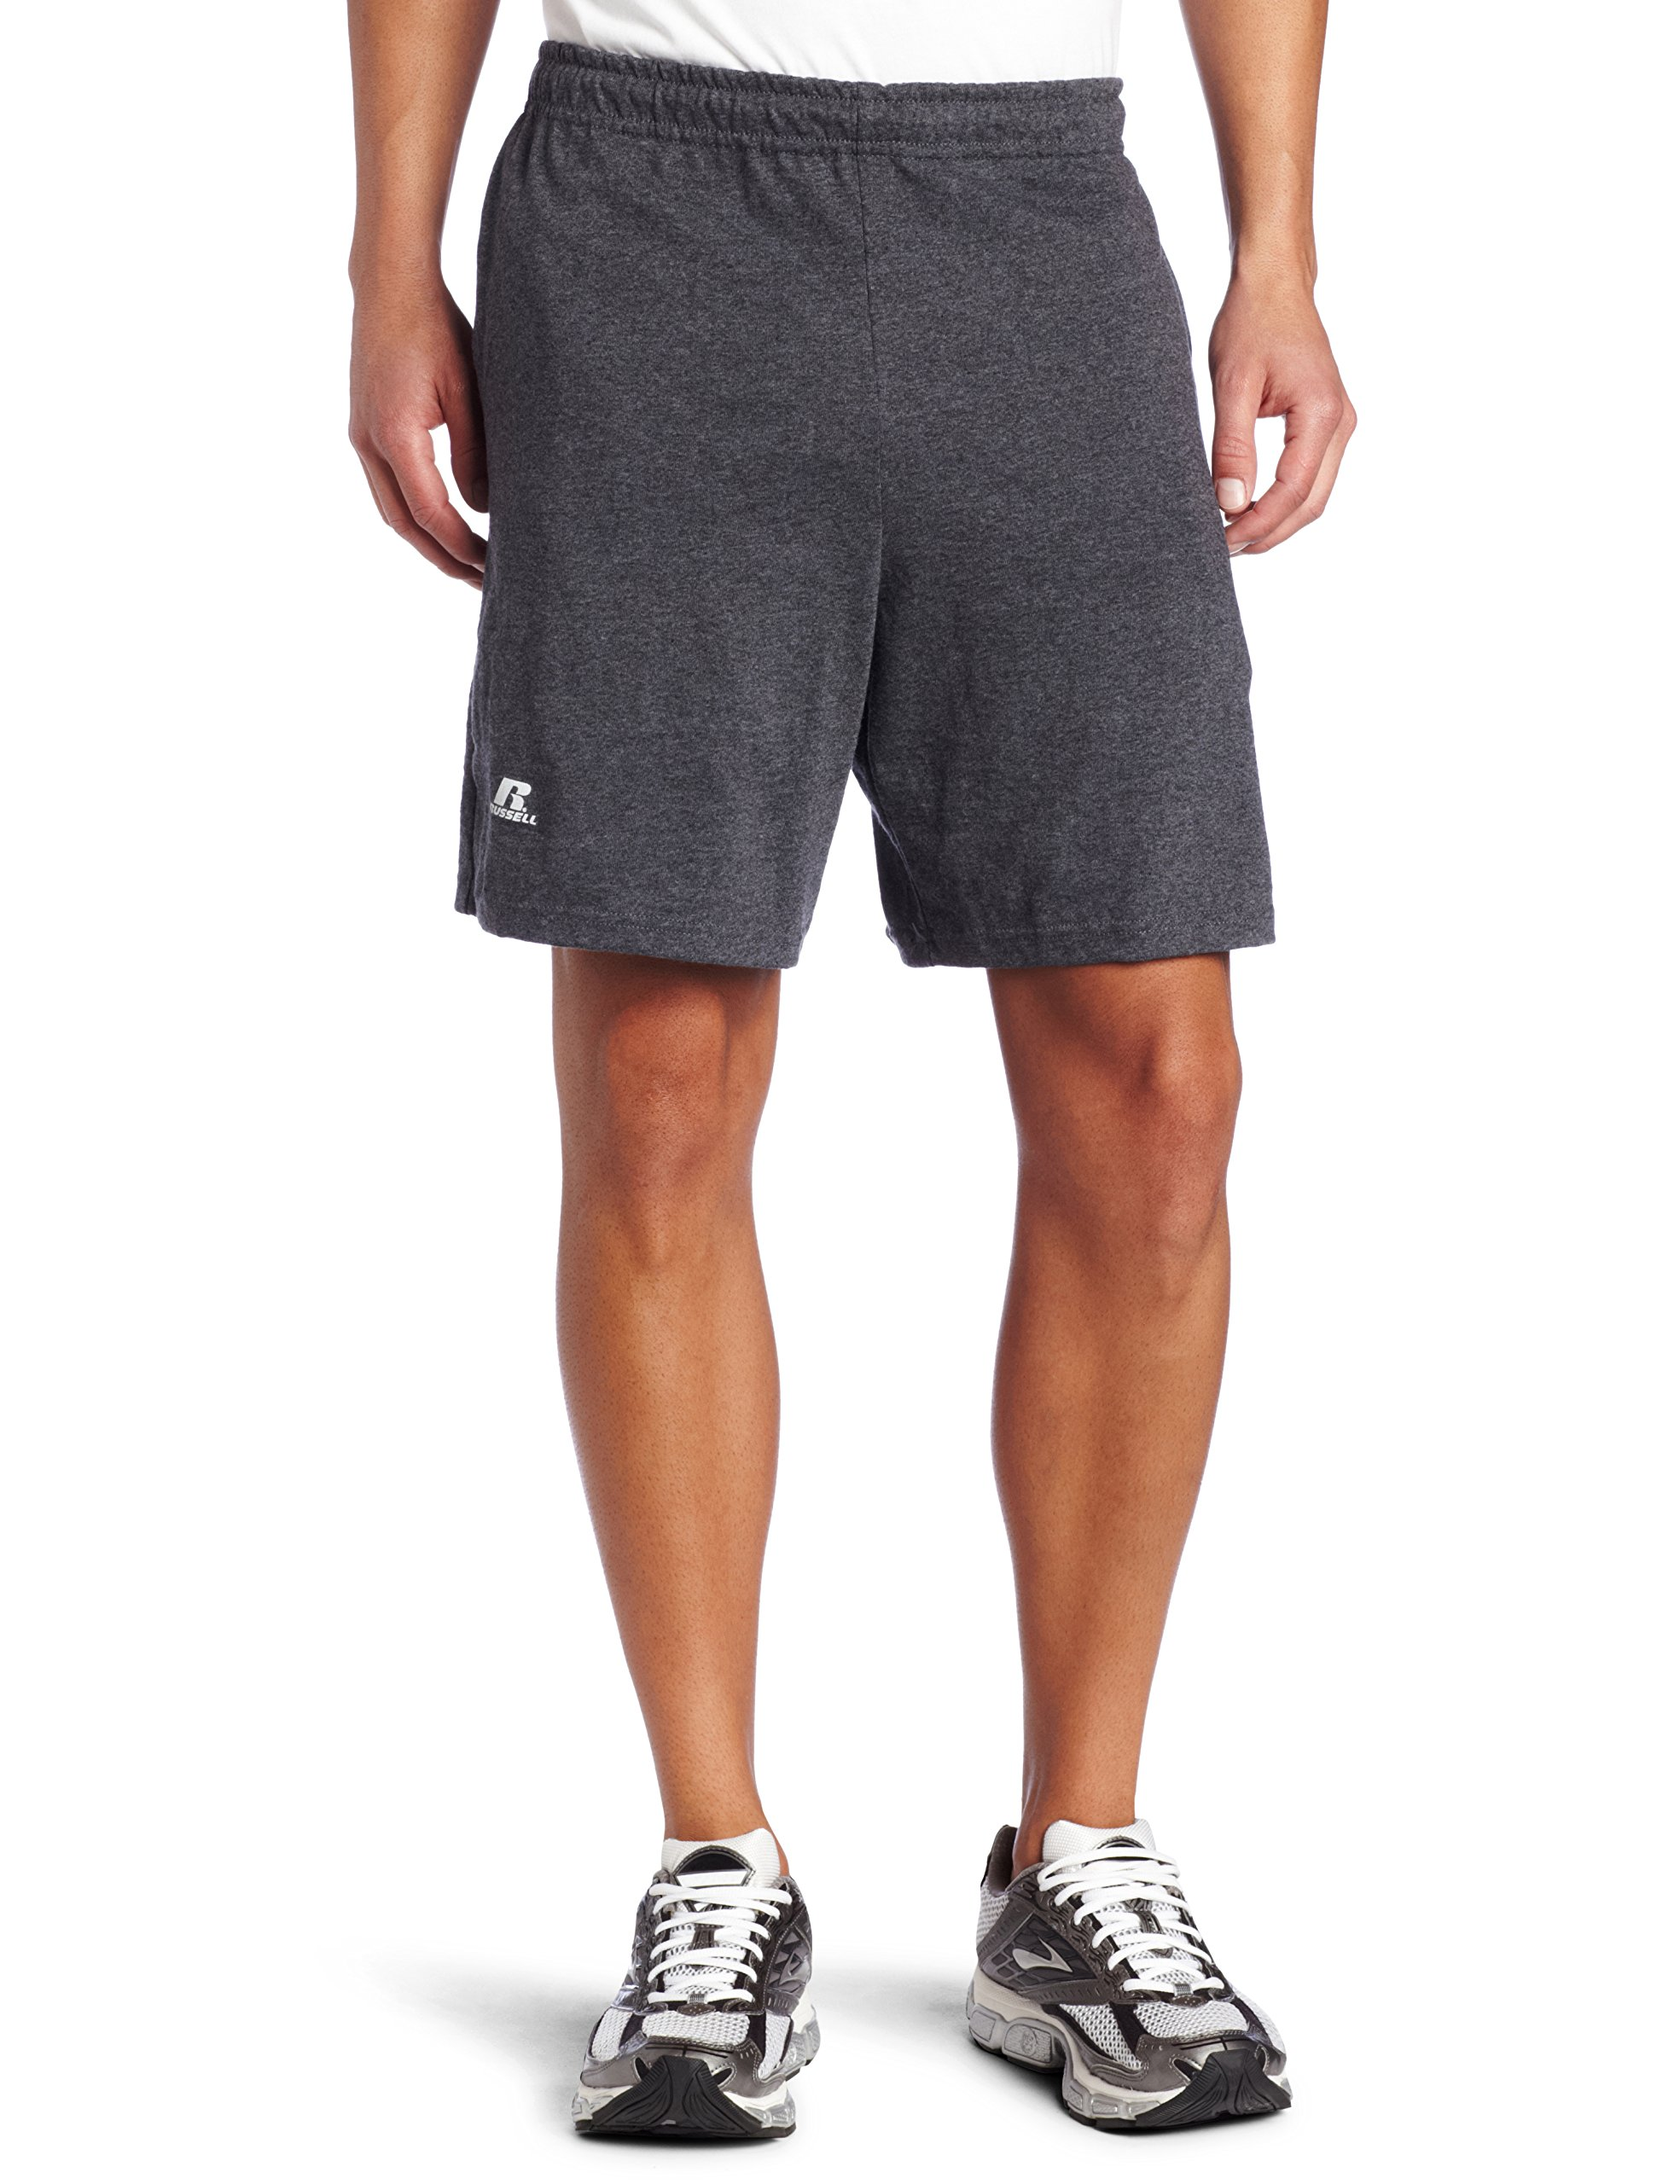 Russell Athletic Men's Cotton Baseline Short with Pockets, Black Heather, XXXX-Large by Russell Athletic